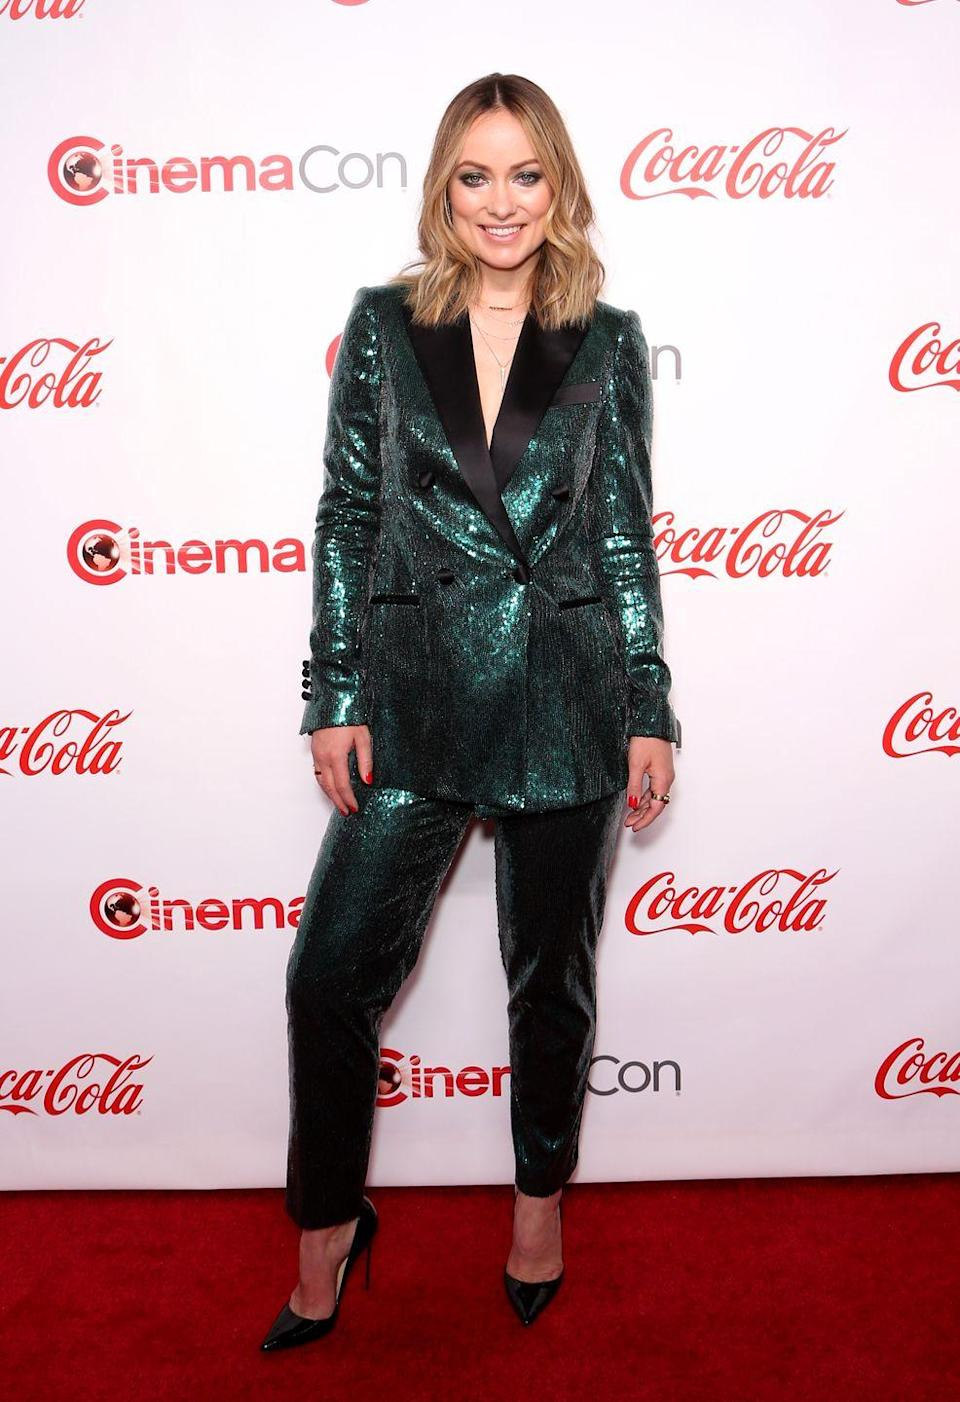 <p>The star changed out of her Rachel Zoe floral-print suit for a sequinned green Elie Saab suit and black heels for the event. <br></p>